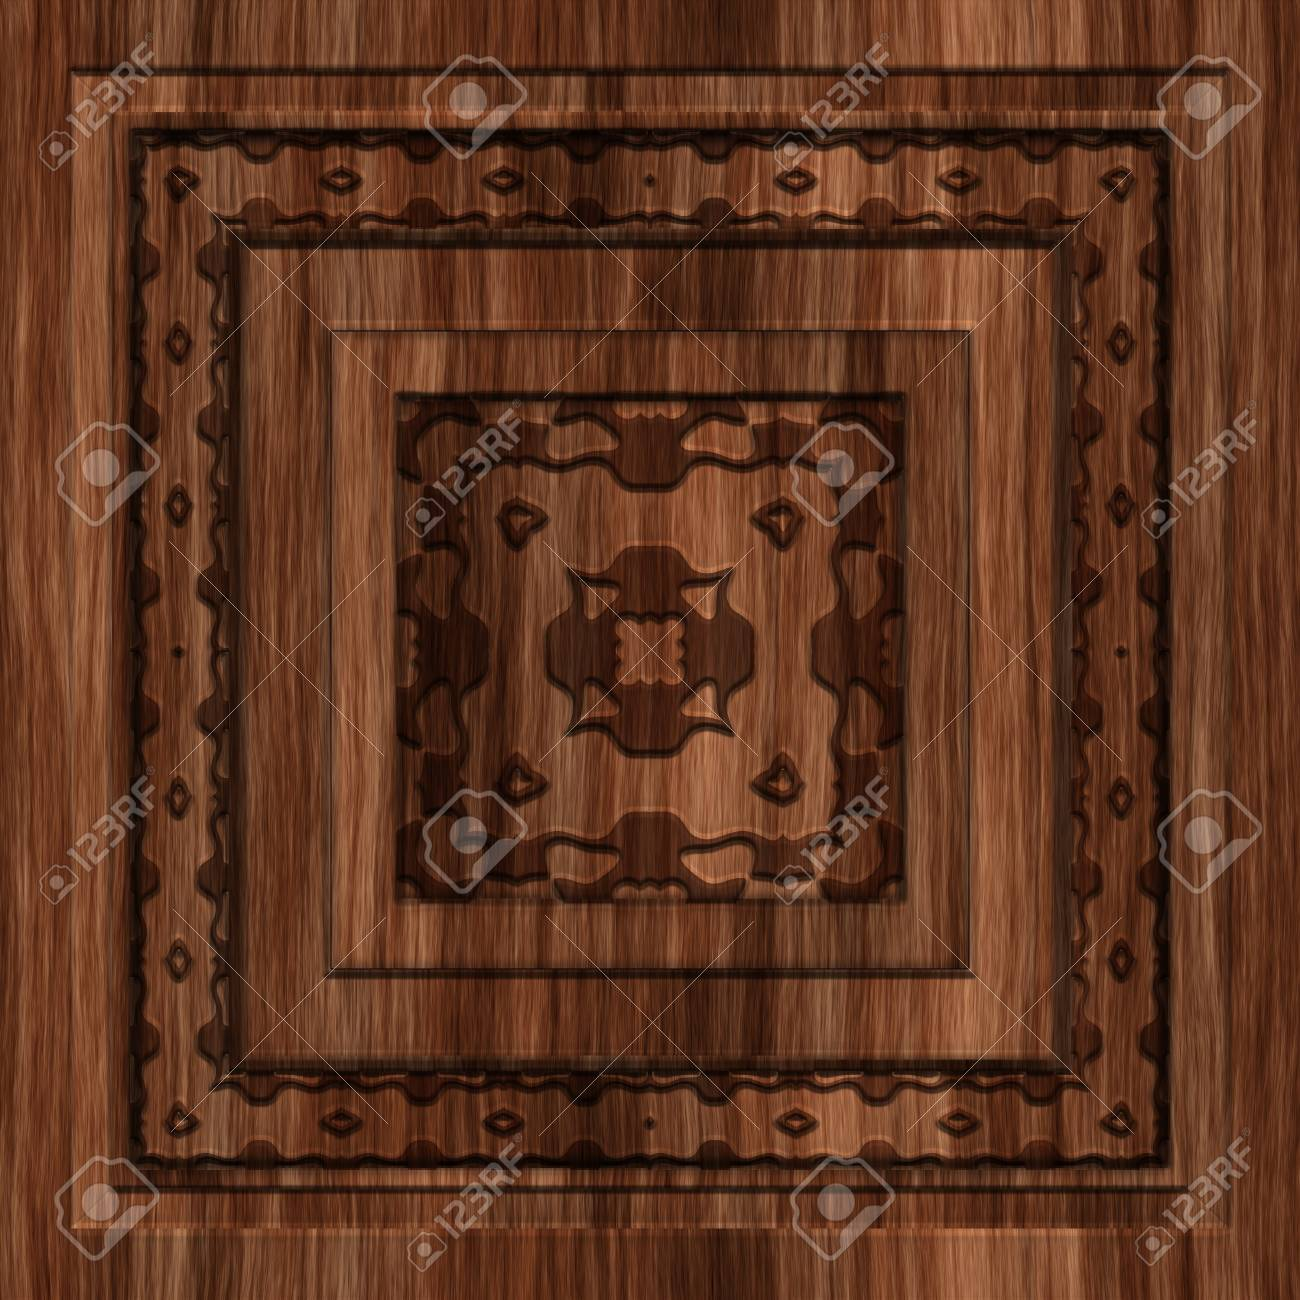 Decorating Walls With Wood Paneling from previews.123rf.com